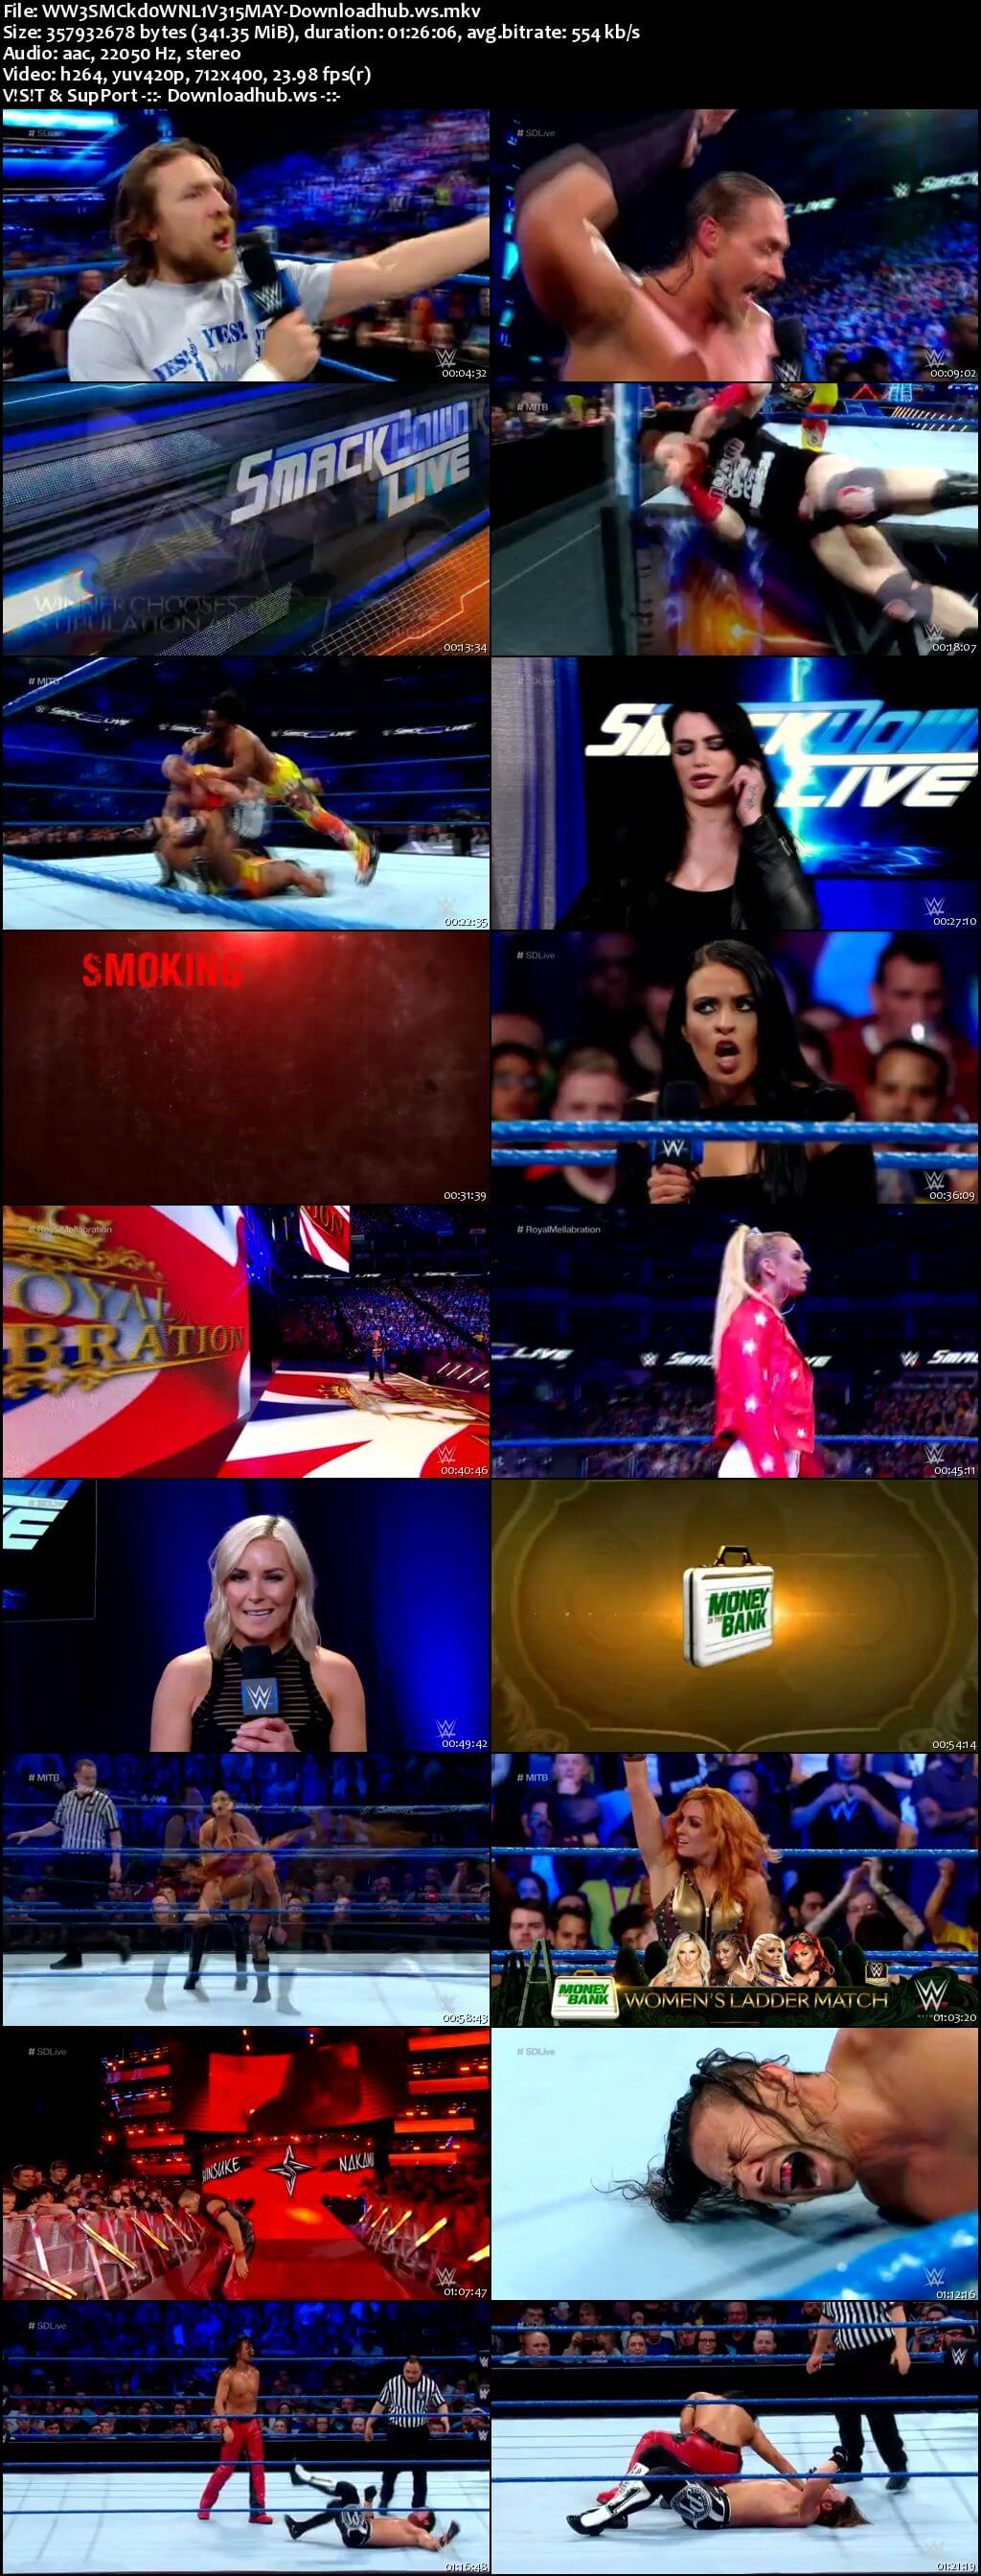 WWE Smackdown Live 15 May 2018 480p HDTV Download